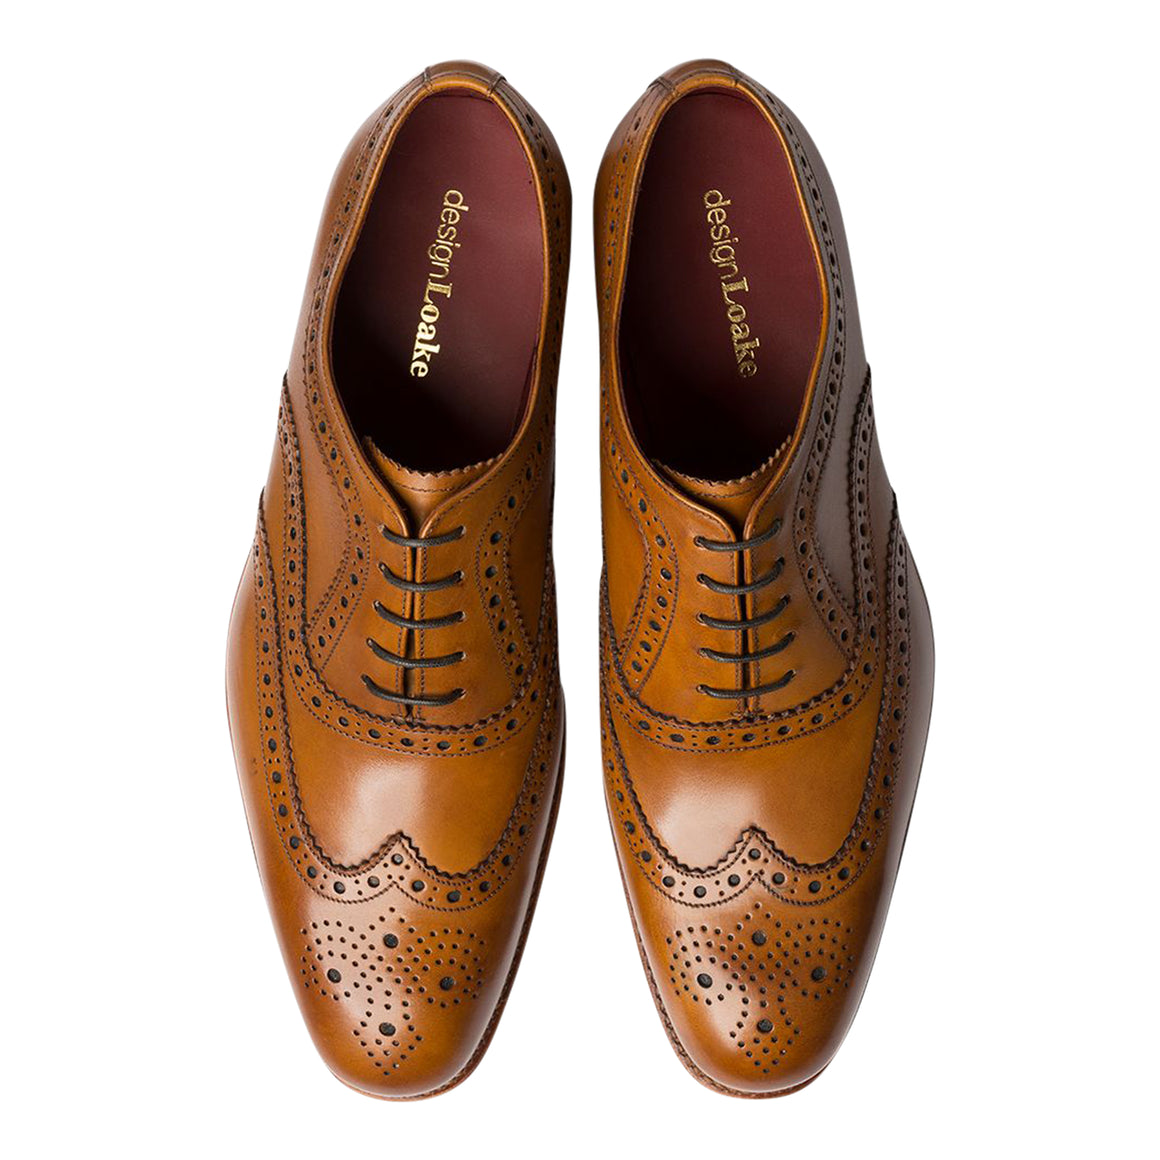 Fearnley Brogue Shoes  for Men in Tan